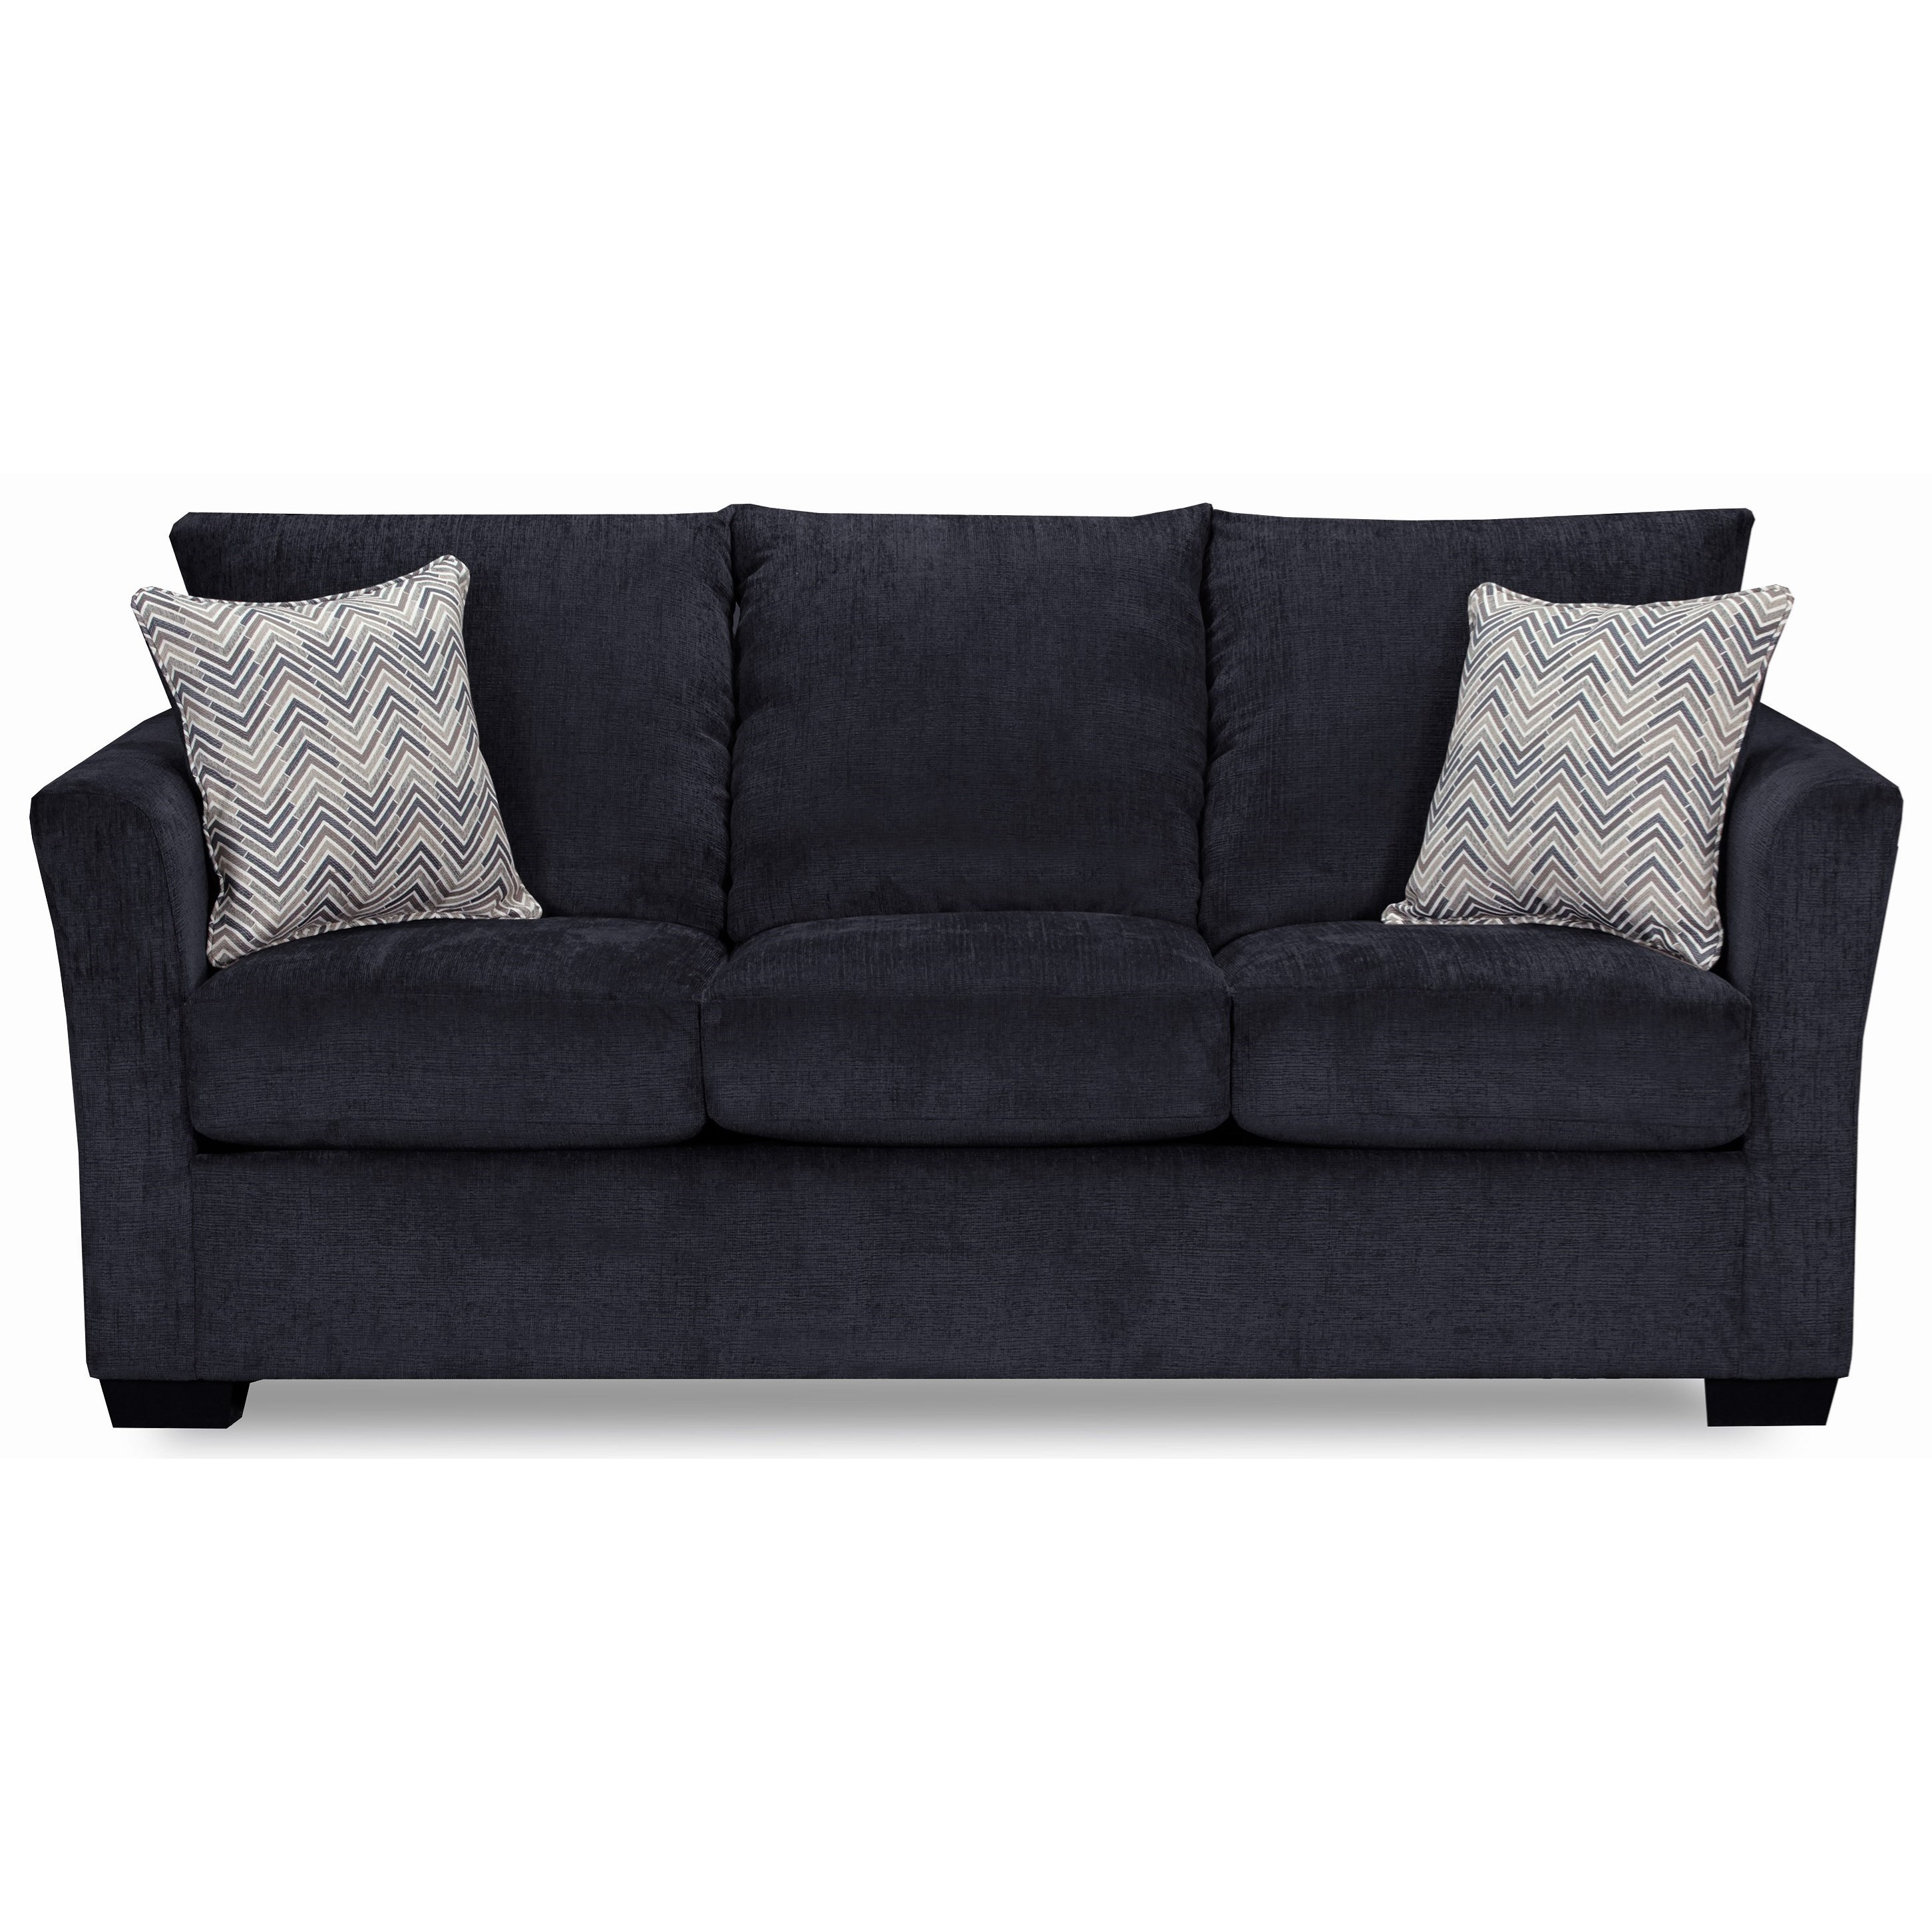 4206 Transitional Queen Sleeper Sofa by United Furniture Industries at Bullard Furniture